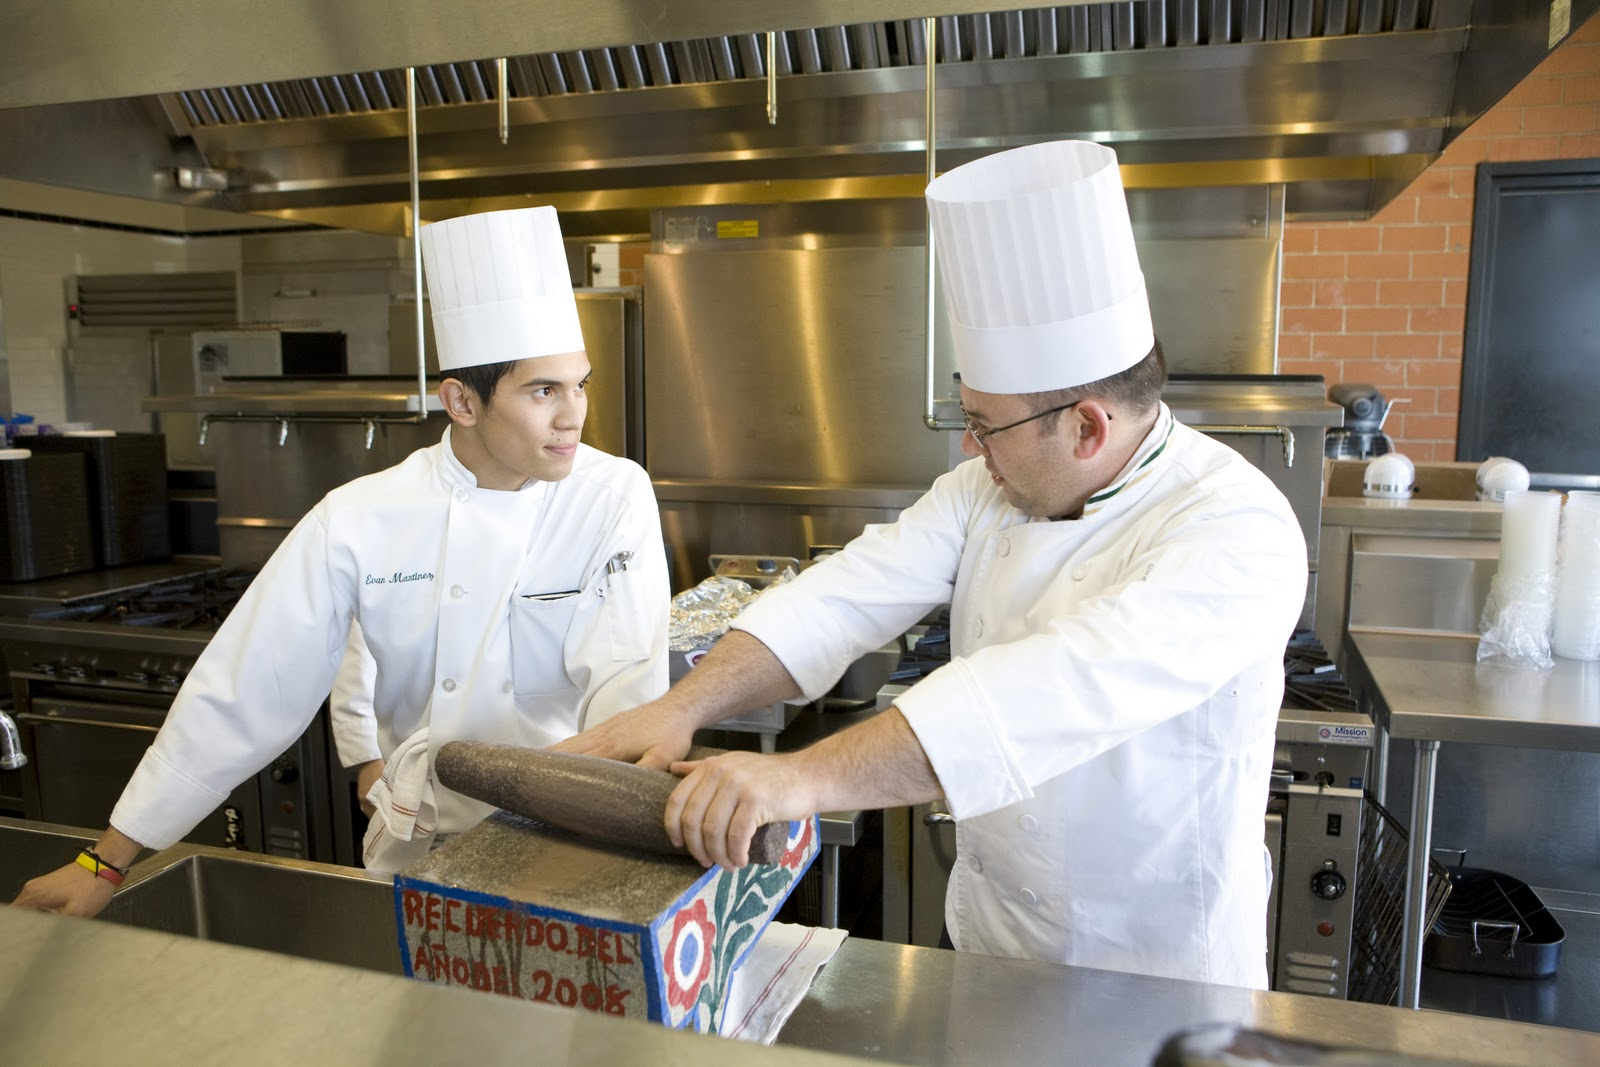 Cets online tool kit the culinary institute of america to launch latin cuisines certificate program at san antonio campus